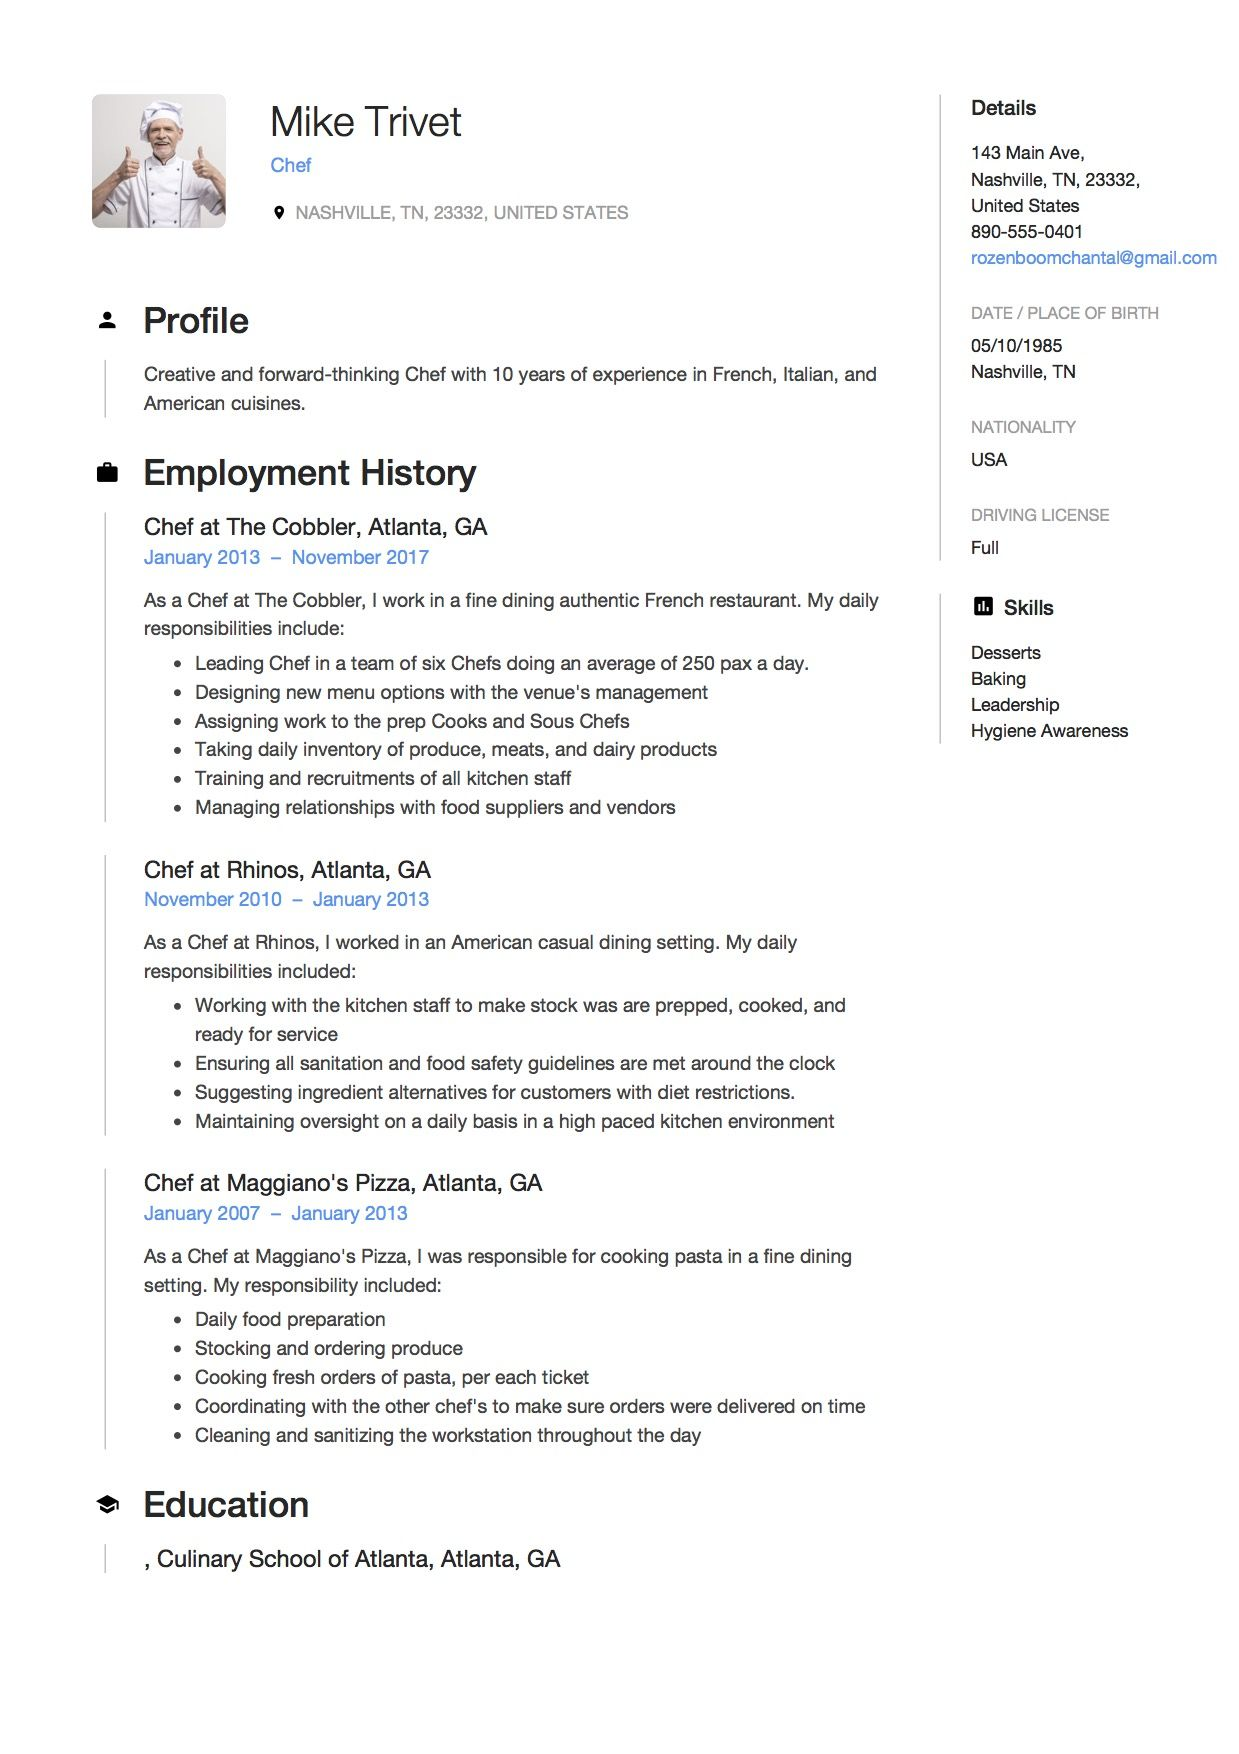 Chef Resume Template in 2020 Chef resume, Math worksheet